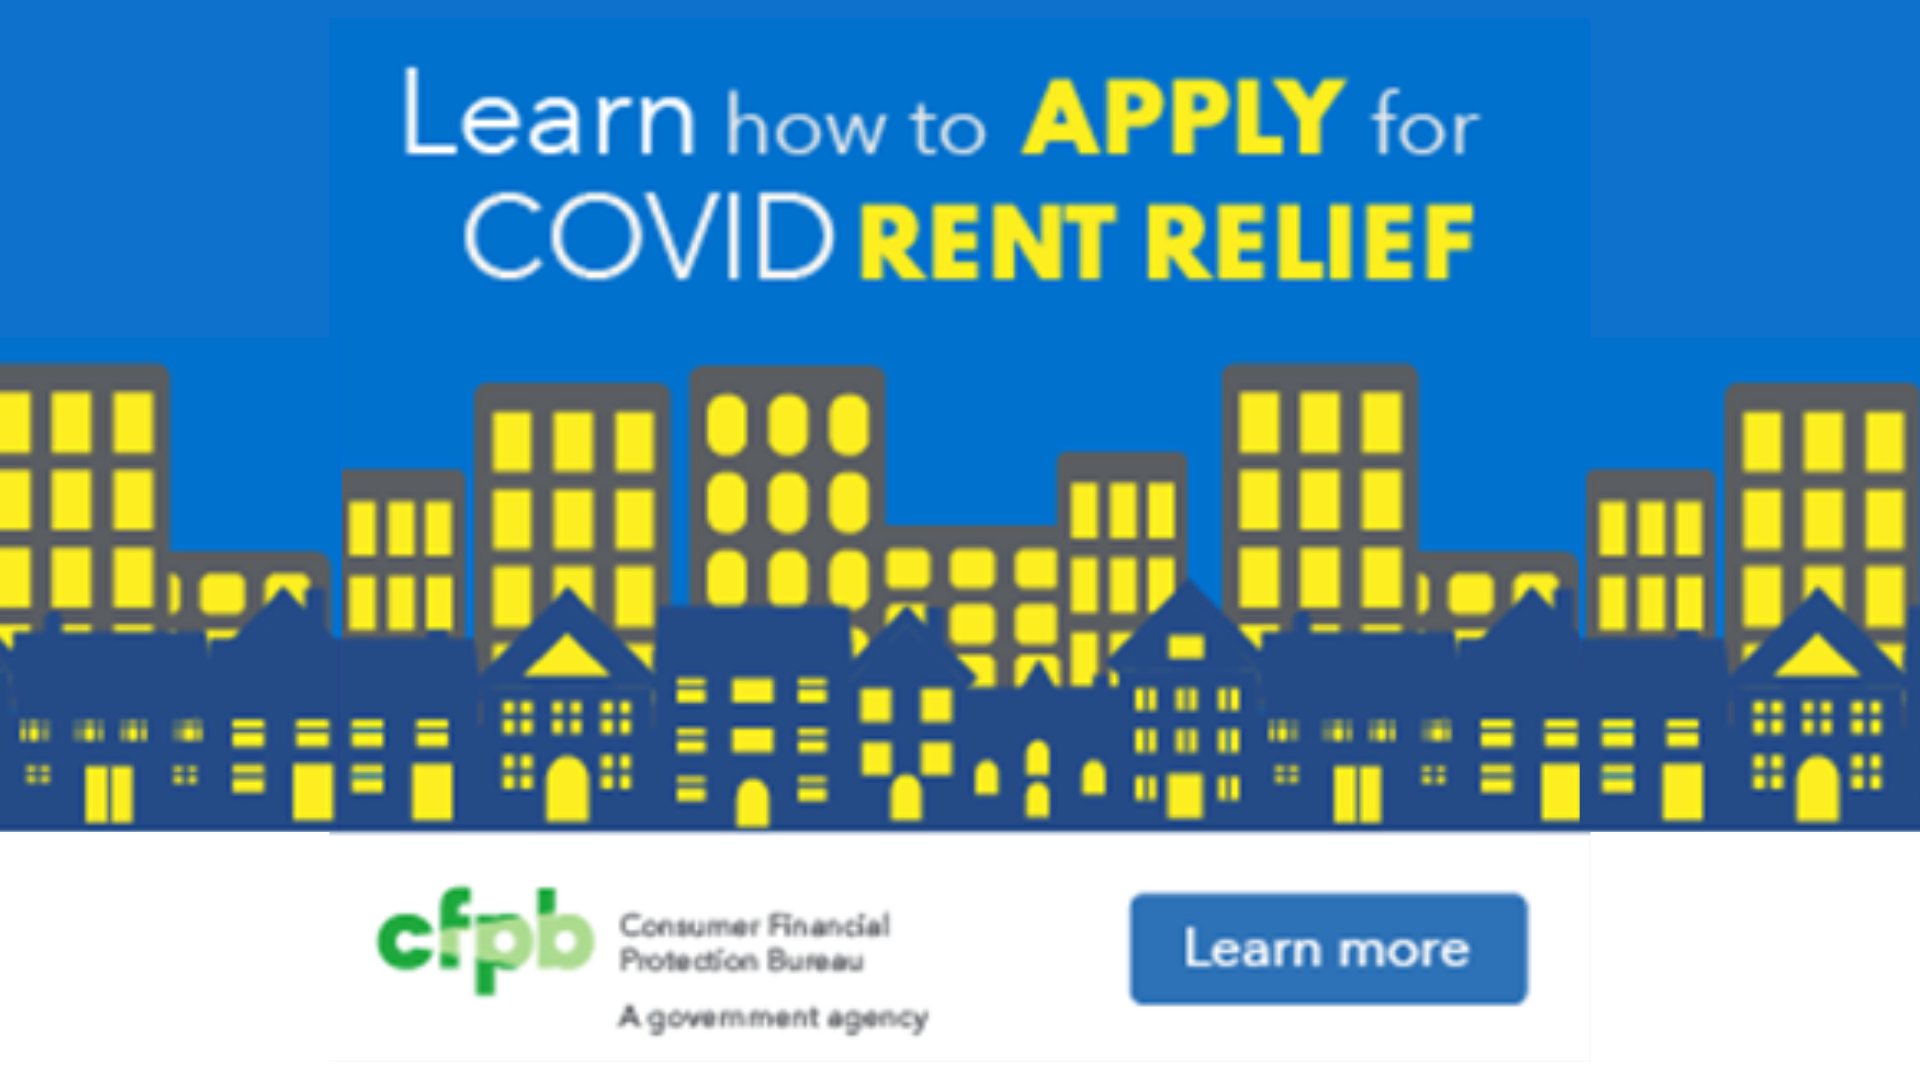 Learn how to apply for COVID rent relief from Consumer Financial Protection Bureau, a government agency. Visit https://www.consumerfinance.gov/coronavirus/mortgage-and-housing-assistance/renter-protections/